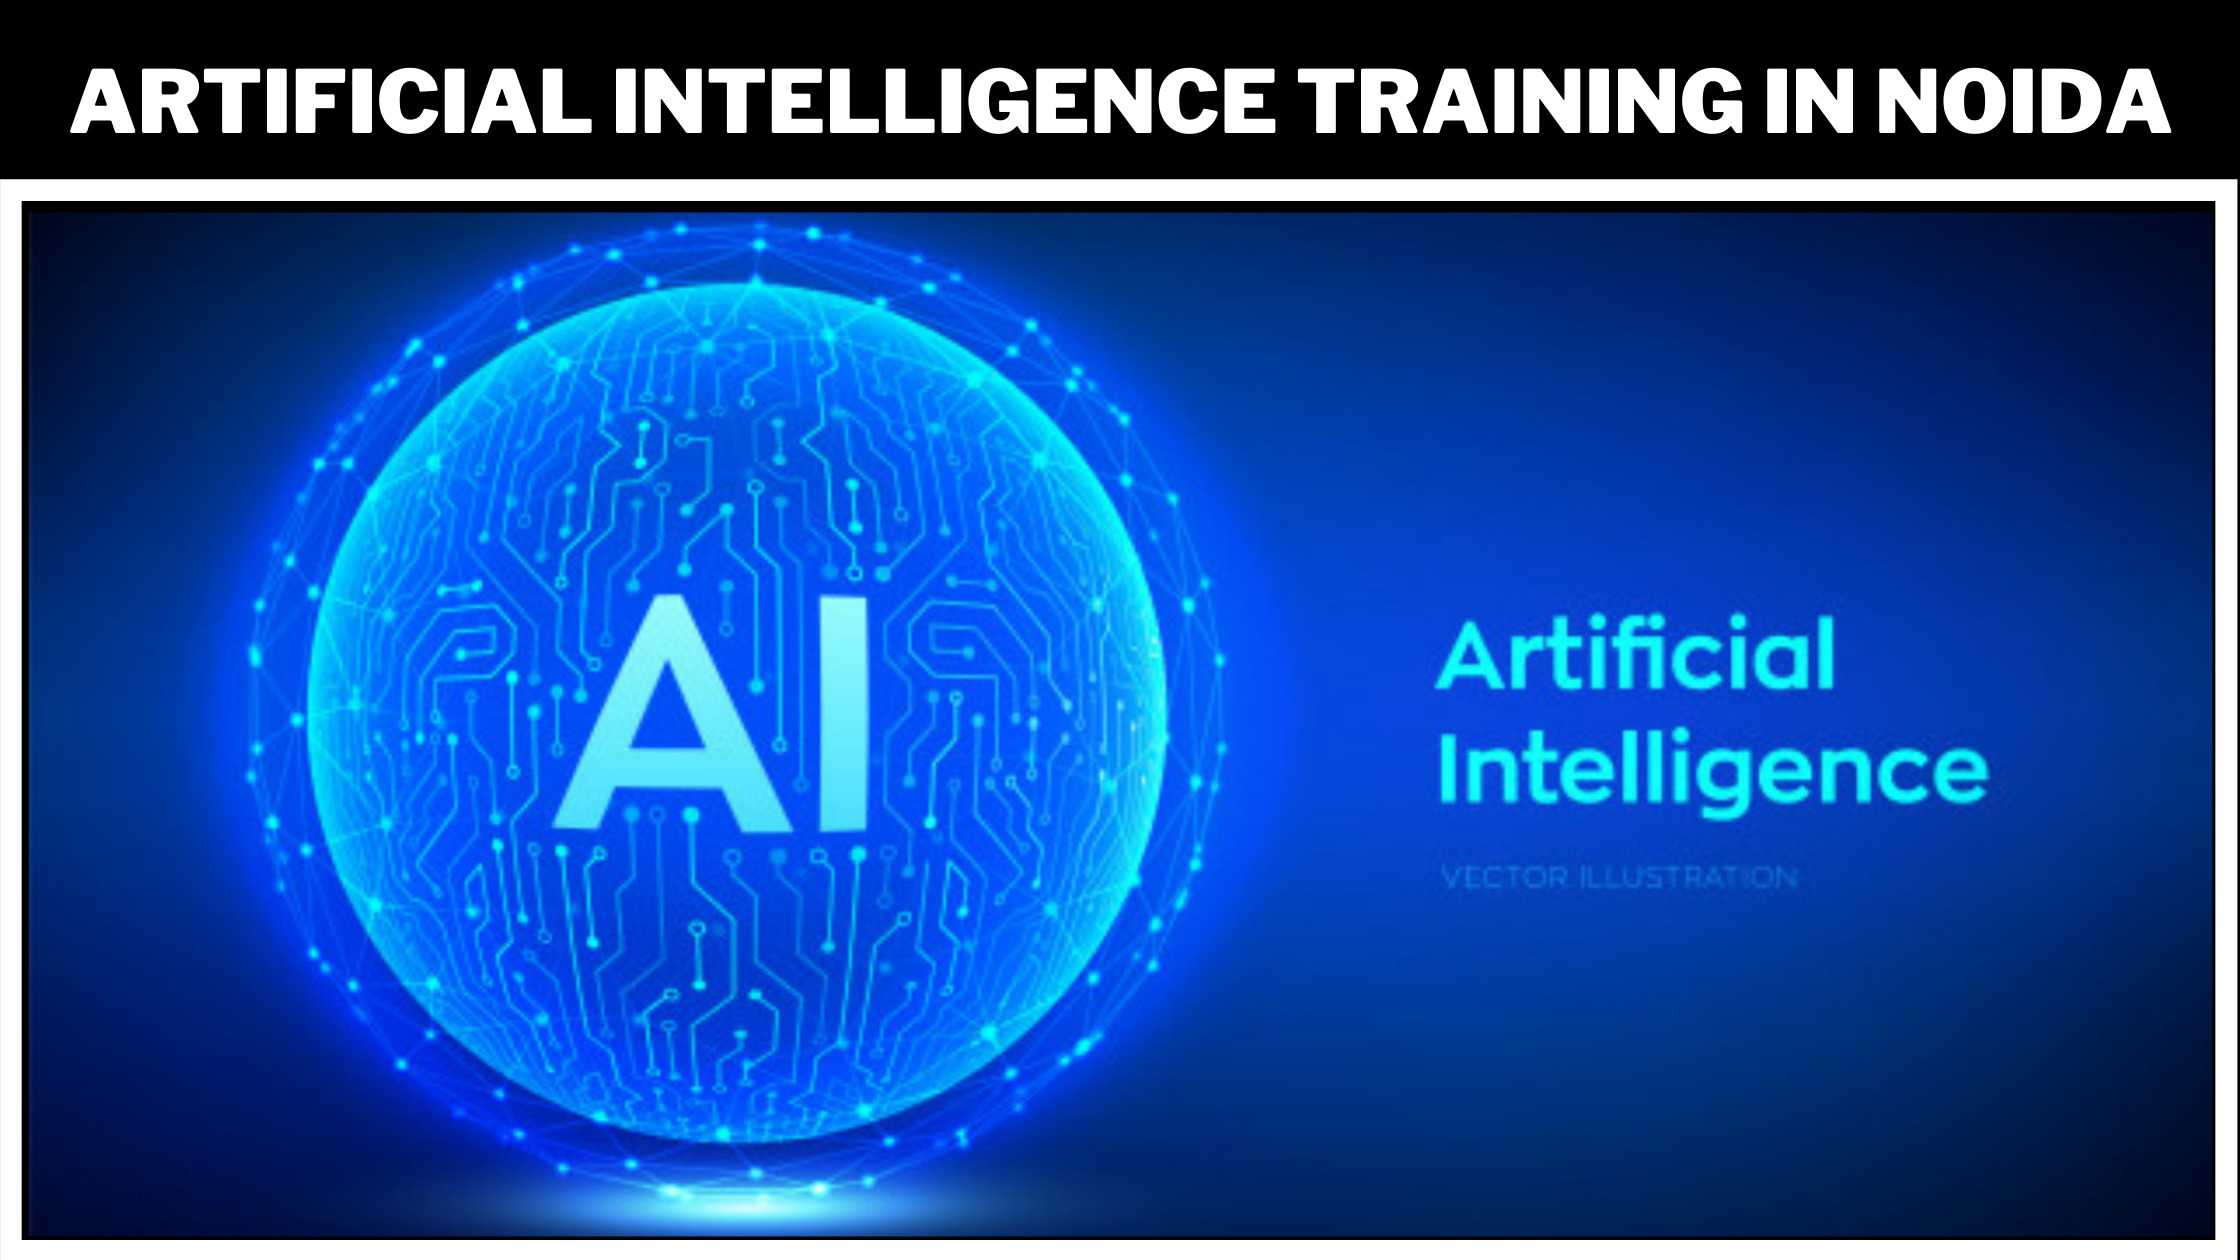 artificial-inteligence-training-in-noida-background.jpeg